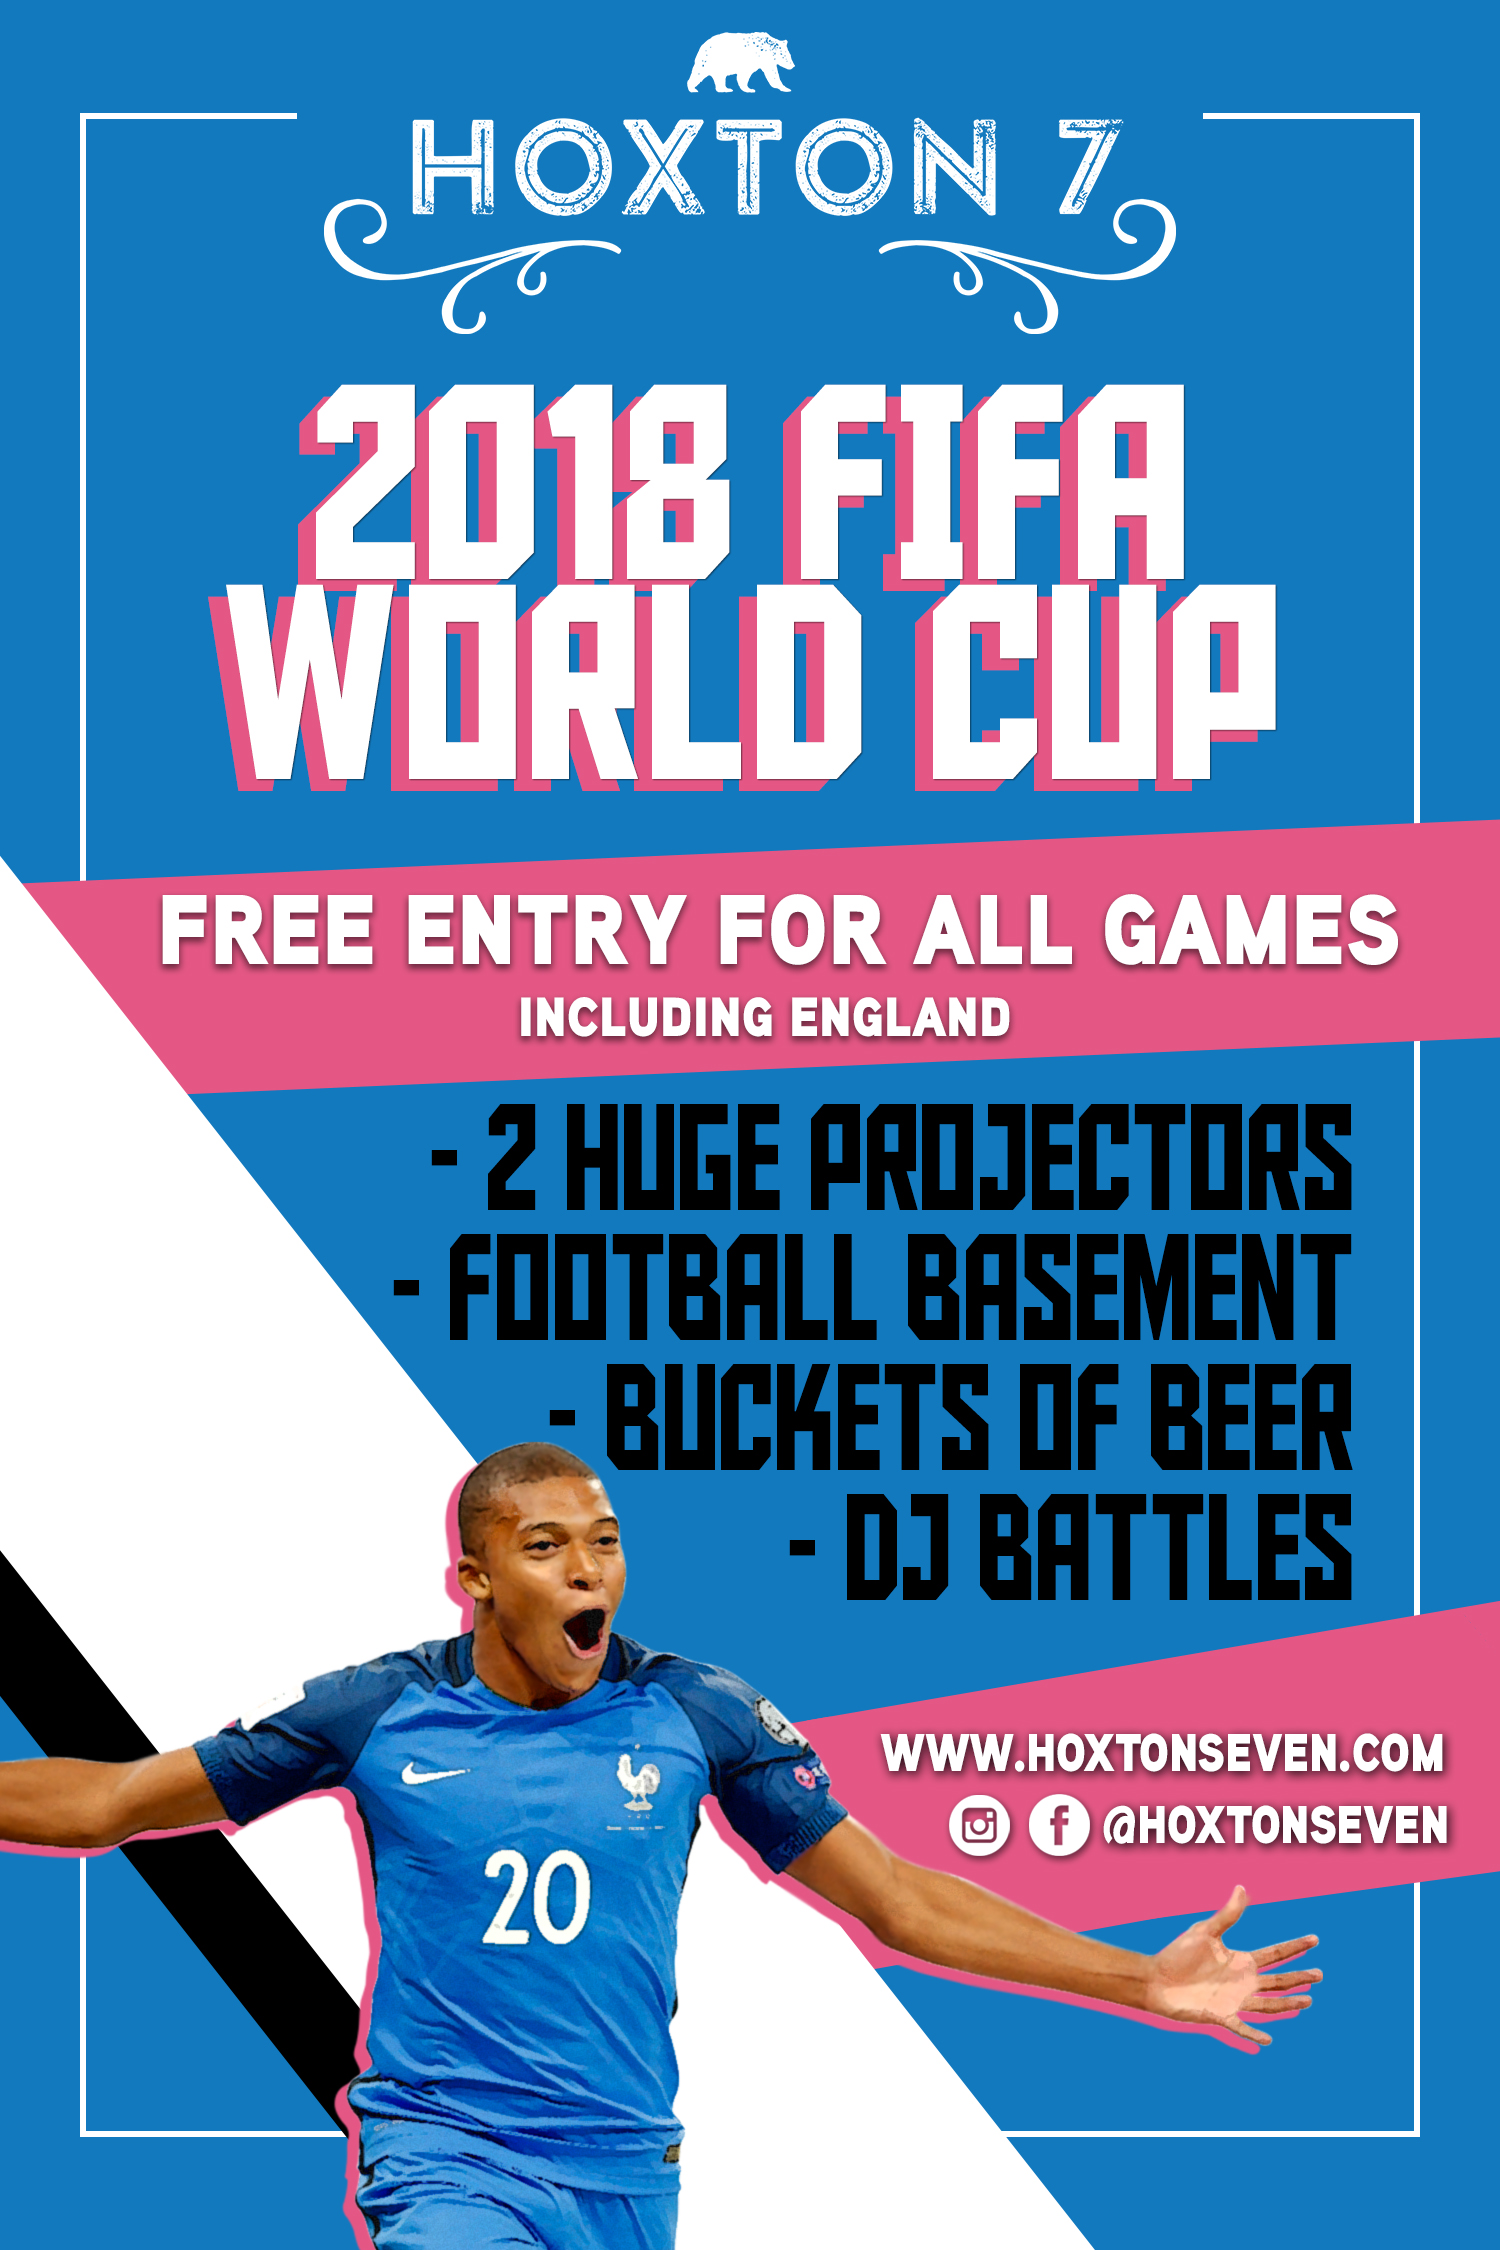 FIFA WORLD CUP 2018 AT HOXTON SEVEN